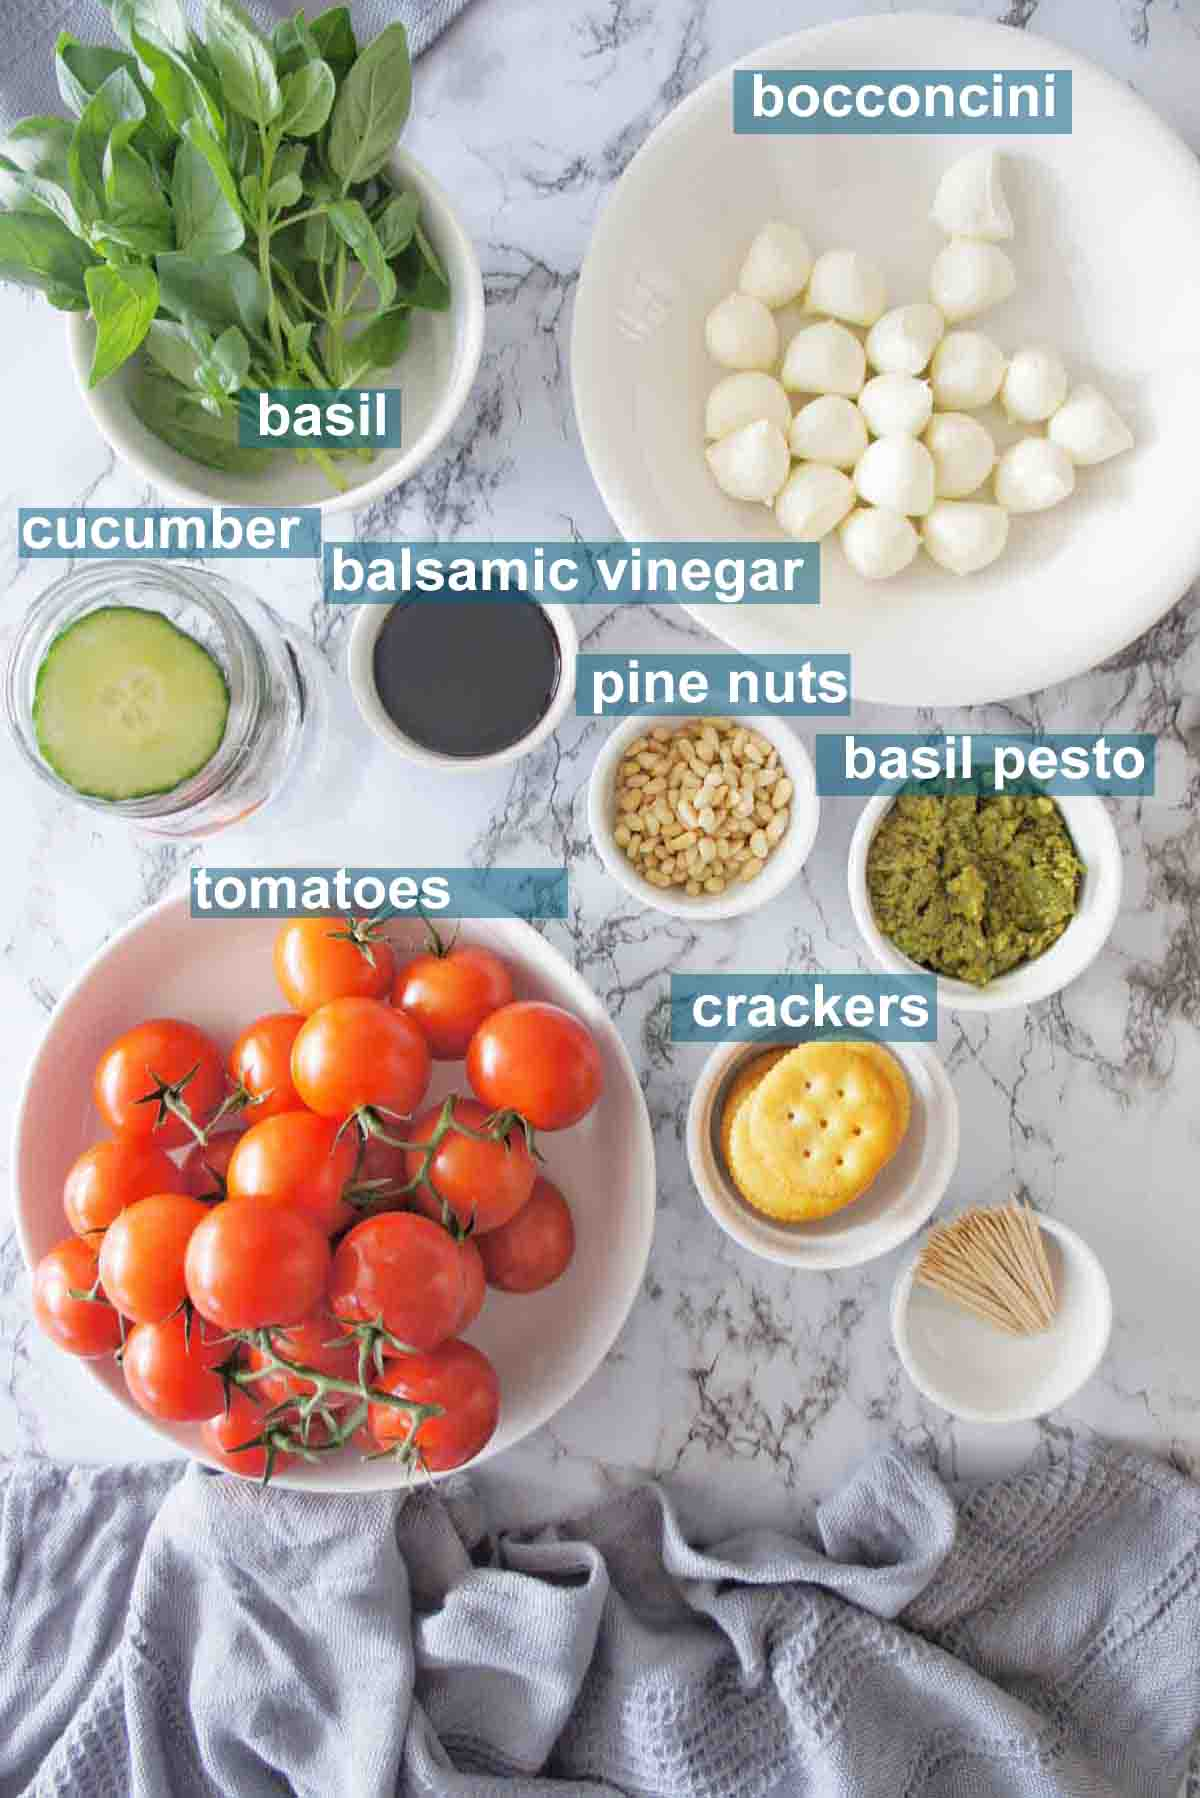 Ingredients needed for caprese bites with text overlay